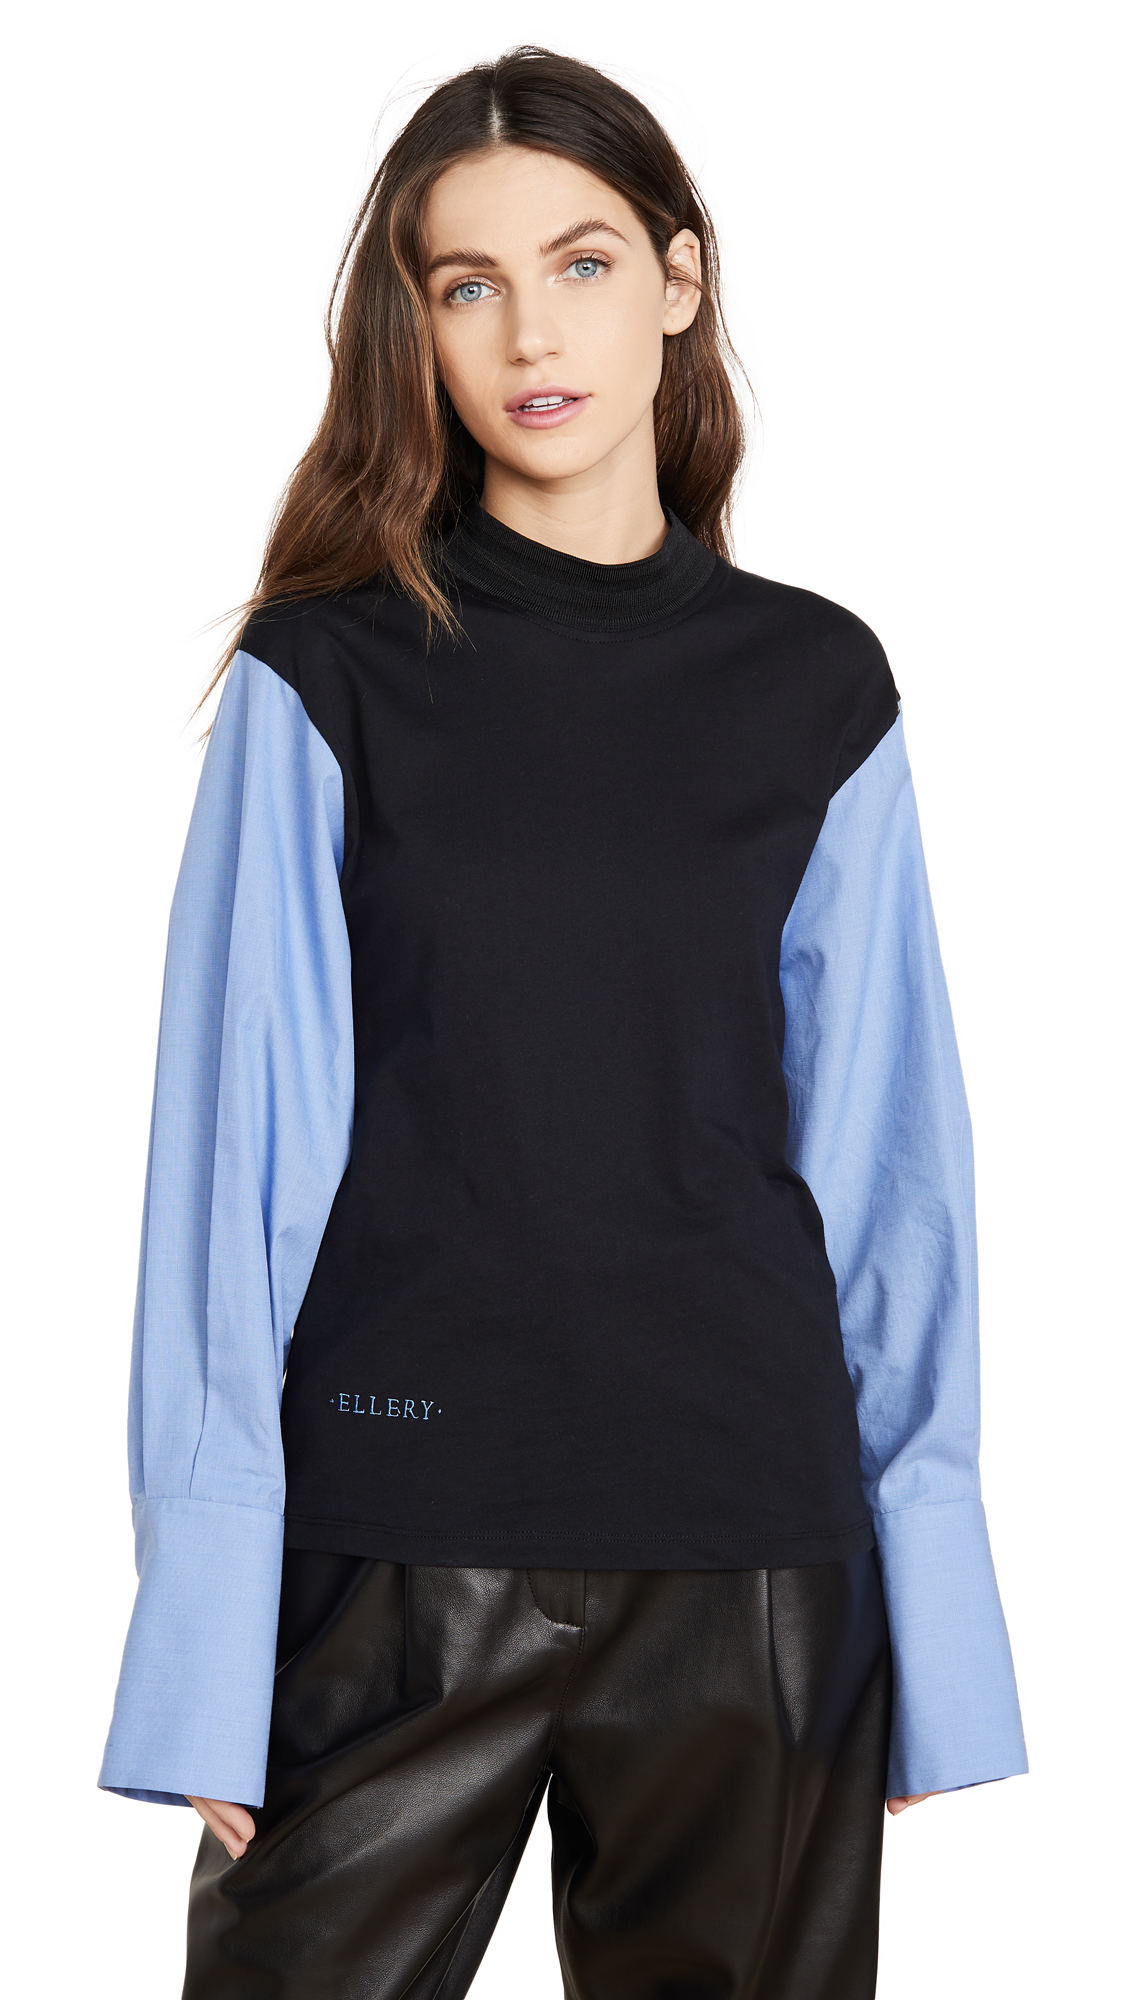 Ellery Stoic Jersey Top with Shirt Sleeves - 40% Off Sale